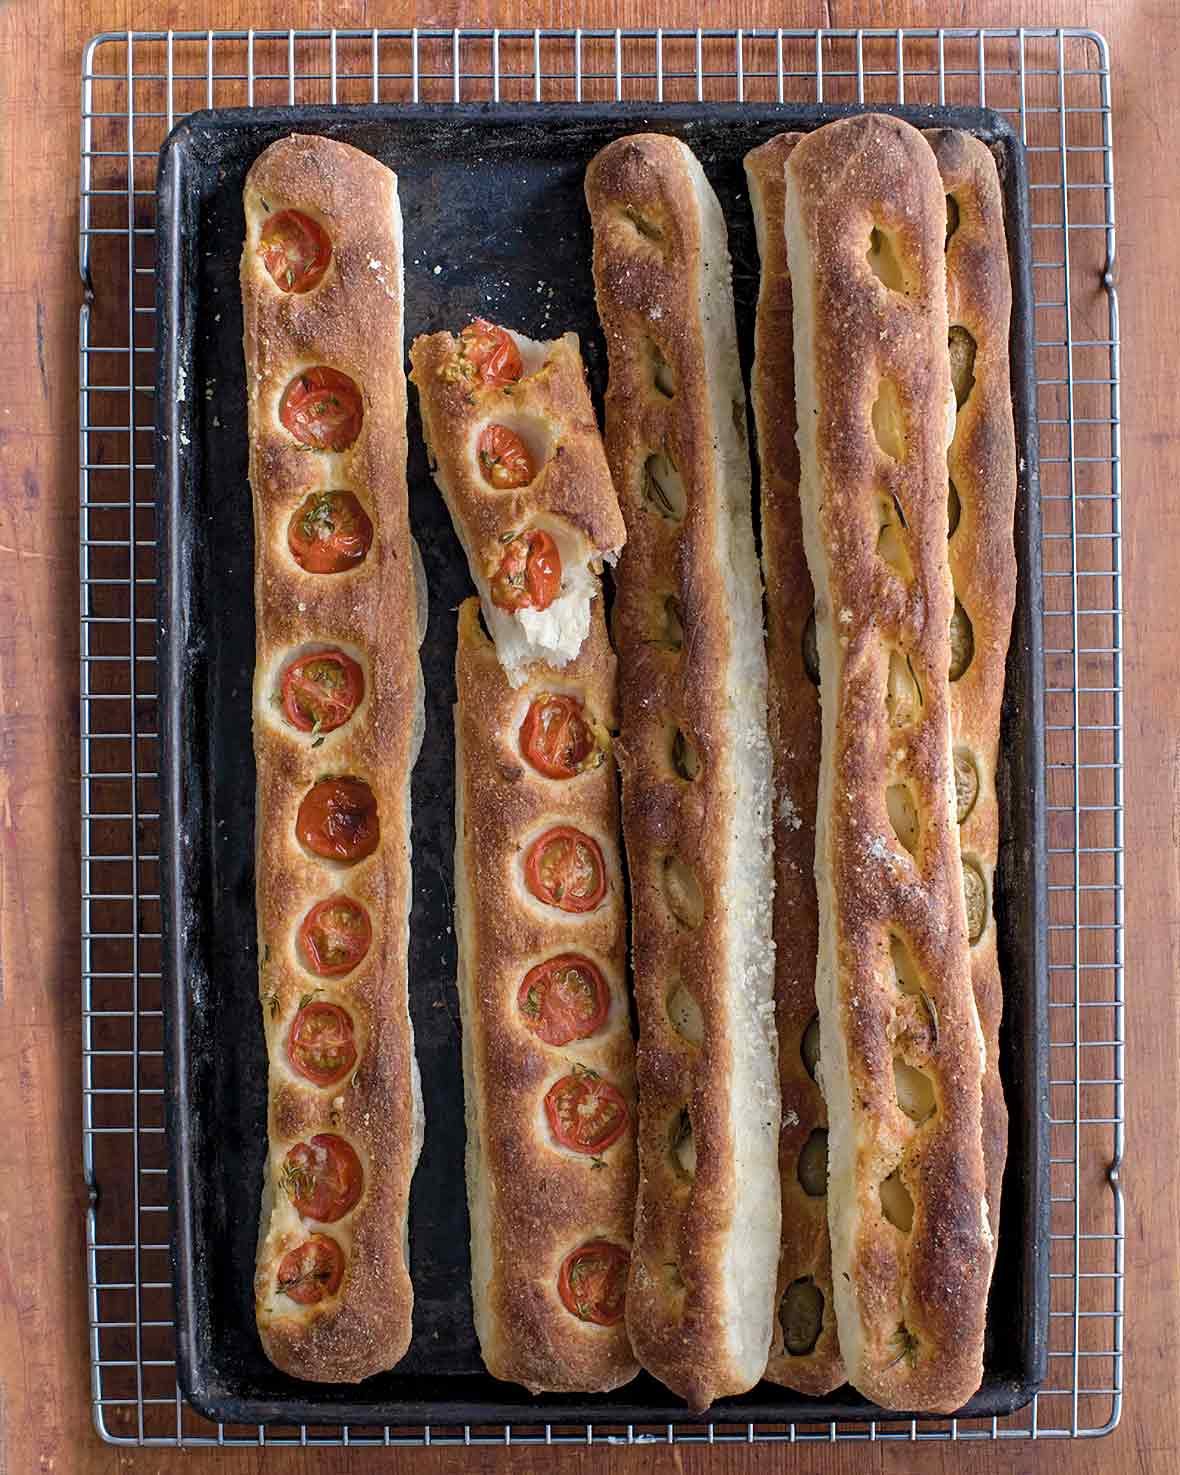 Five no-knead baguettes by Jim Lahey, some with sliced tomato, some with garlic and olives